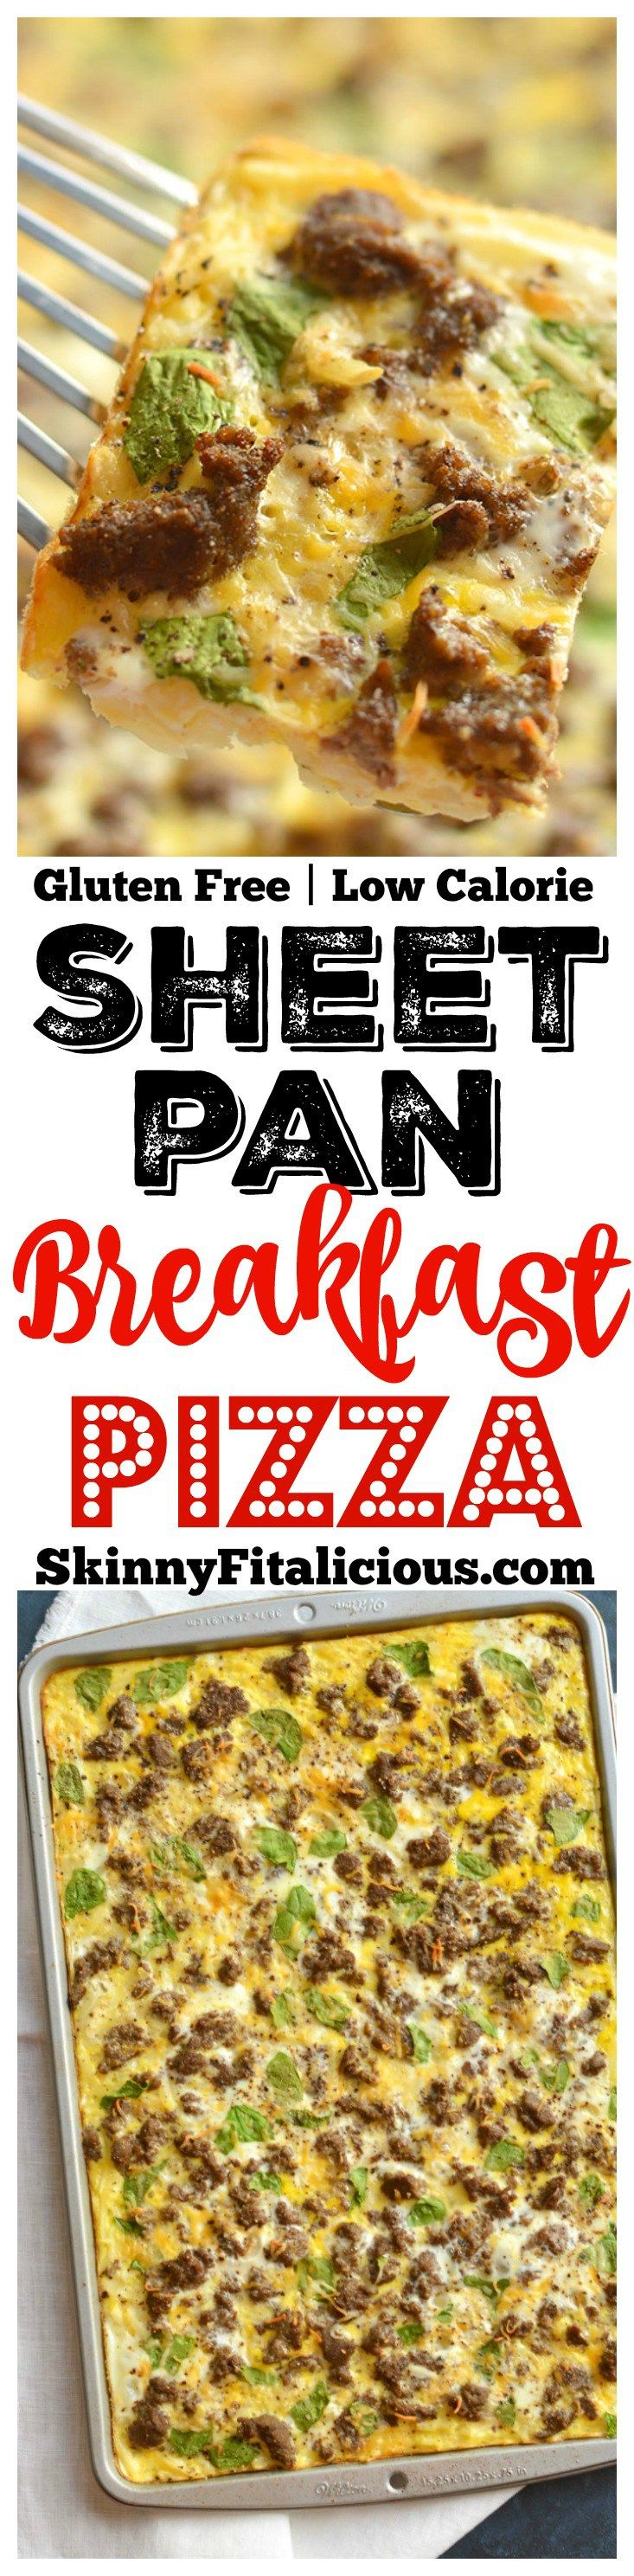 What healthy ingredients are used in a breakfast pizza recipe?